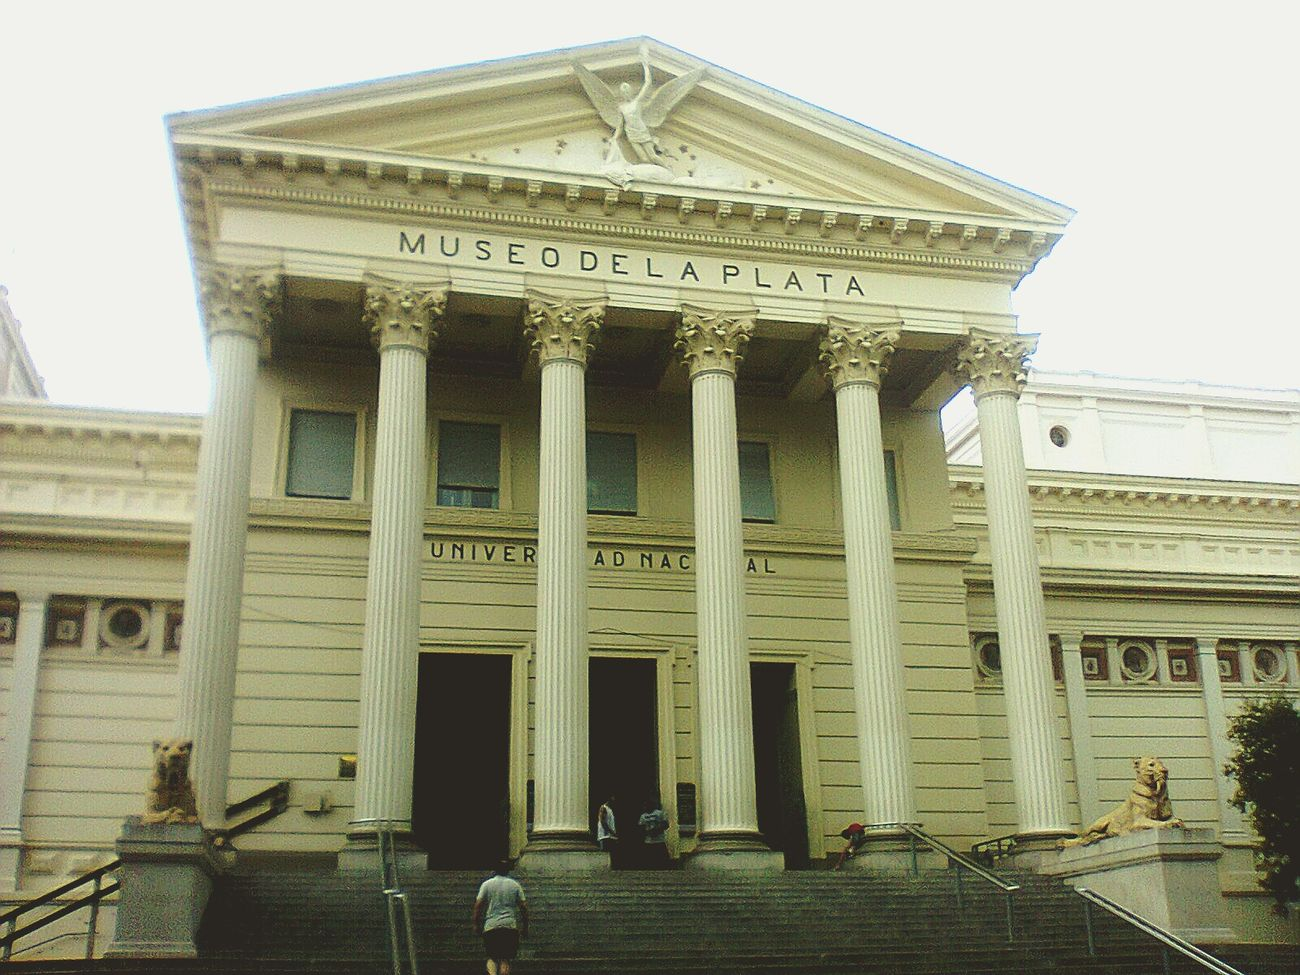 La Plata's museum. December 2014. Holidays Tourist Attraction  Tourism Argentina Tourism Study Architecture History Natural History Museum Theory